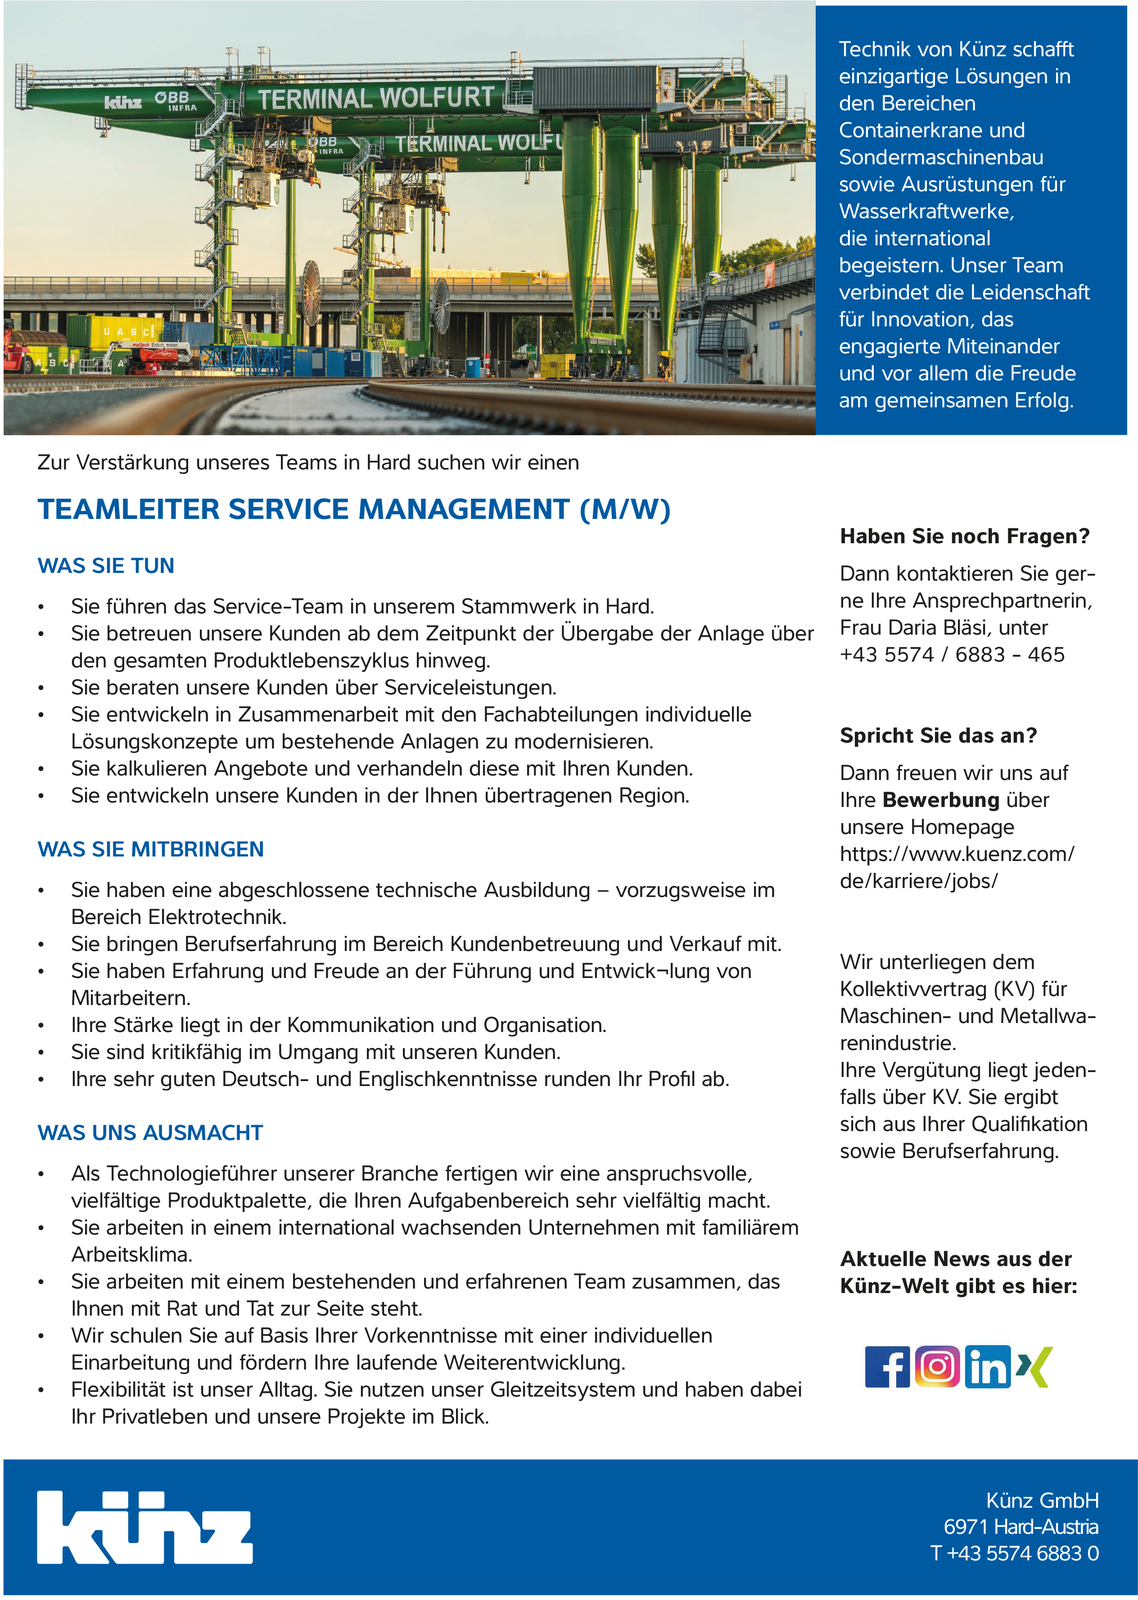 Teamleiter Service Management (m/w)